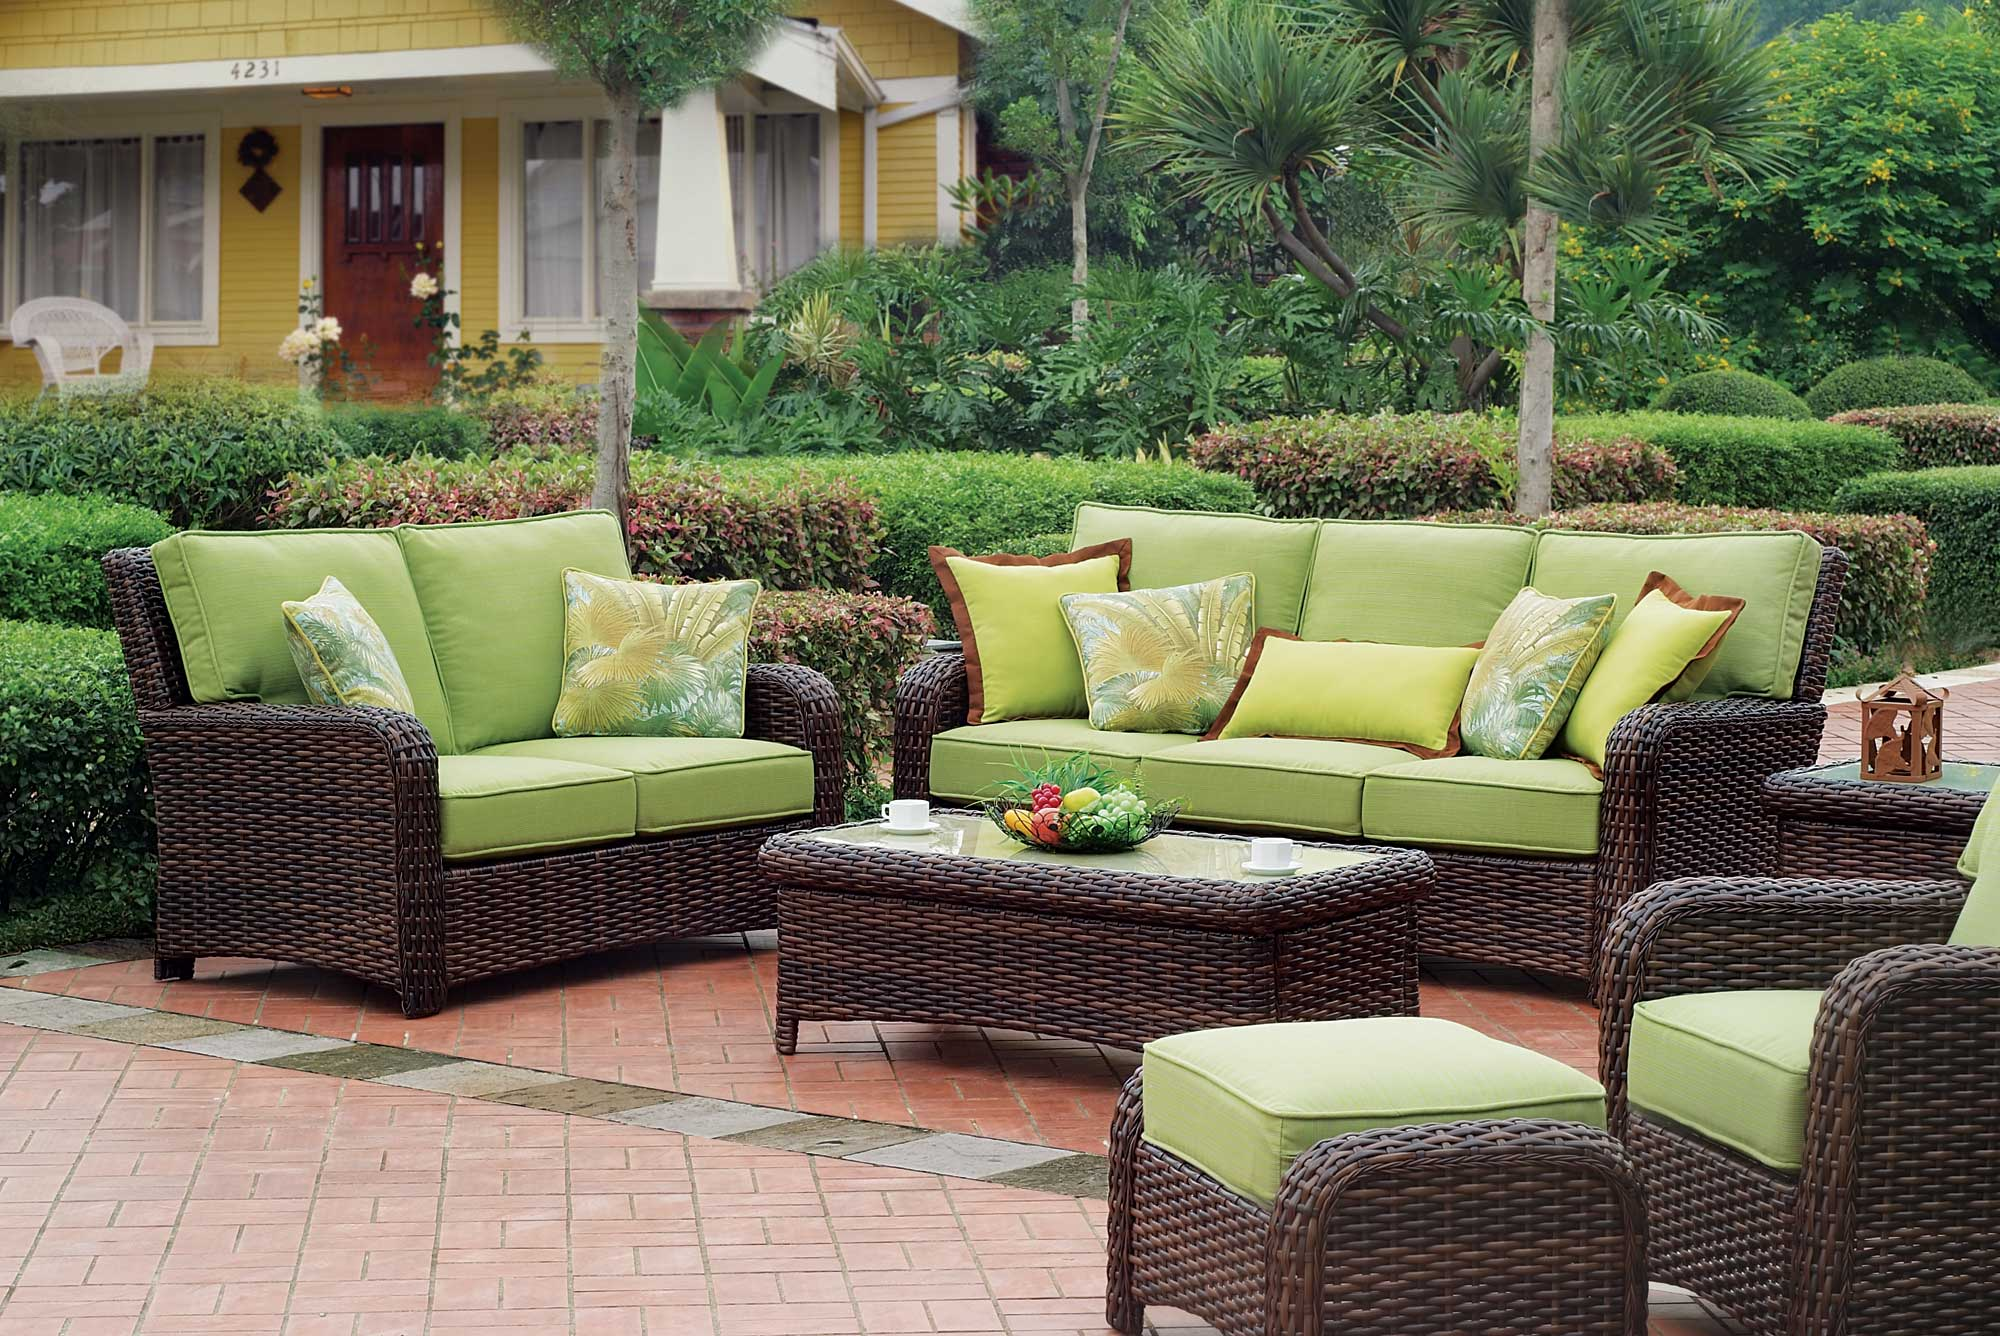 comfortable outdoor seating idea with best patio furniture brands of rattan sofa with green bolster and - Best Outdoor Patio Furniture